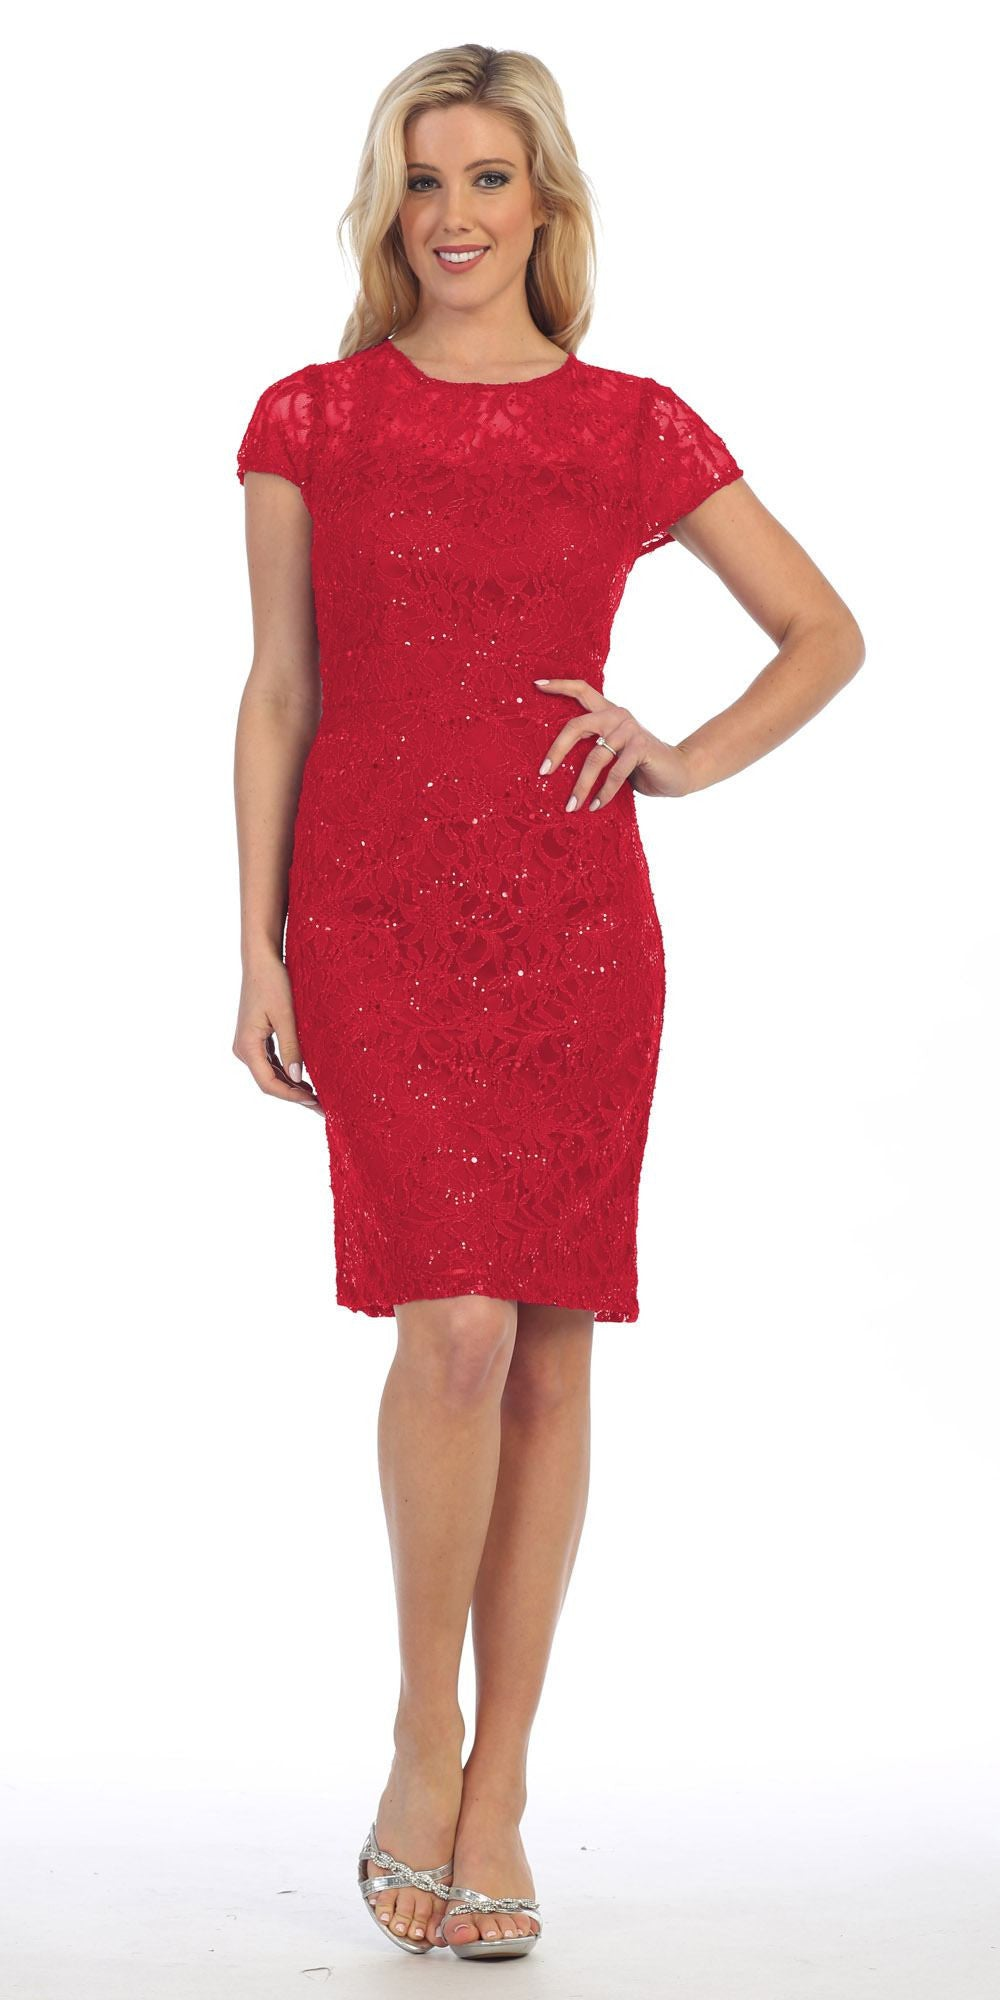 Lace Short Sleeves Knee-Length Cocktail Dress with Sequins Red